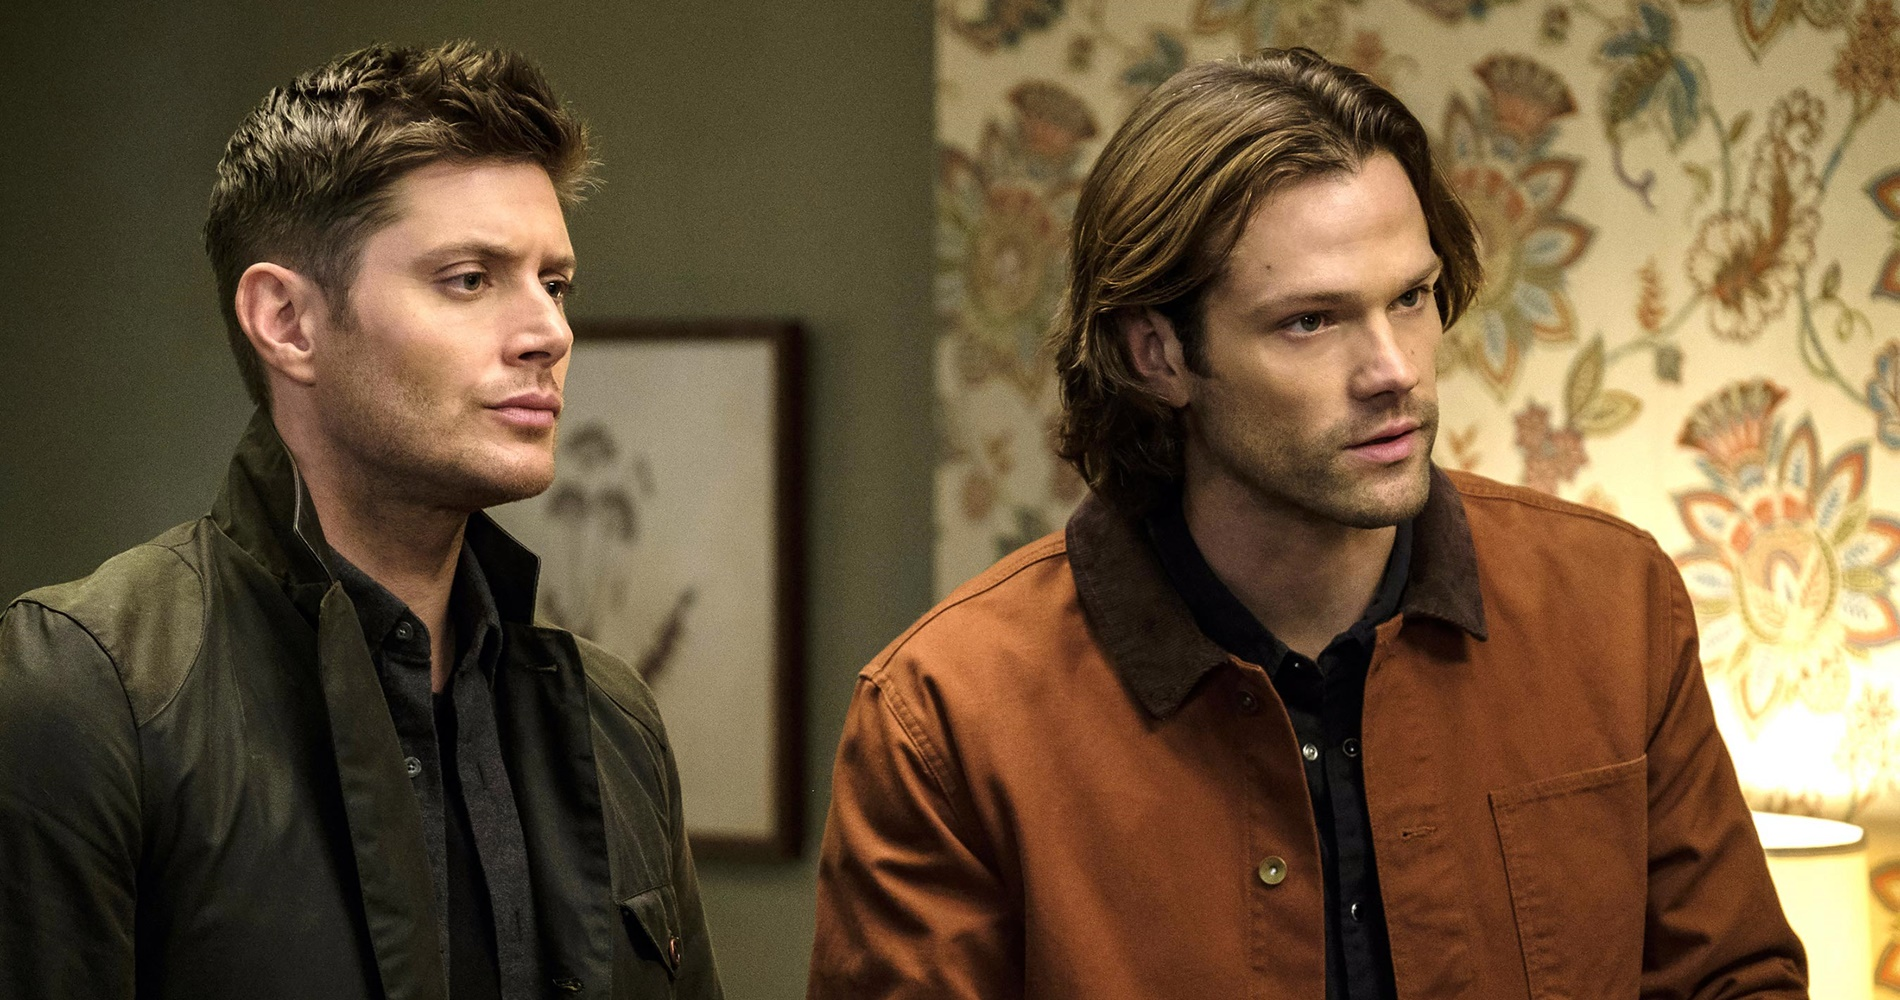 Supernatural season 13 episode 18 Kelley O'Brien, movies/tv, pop culture, wdc-slideshow